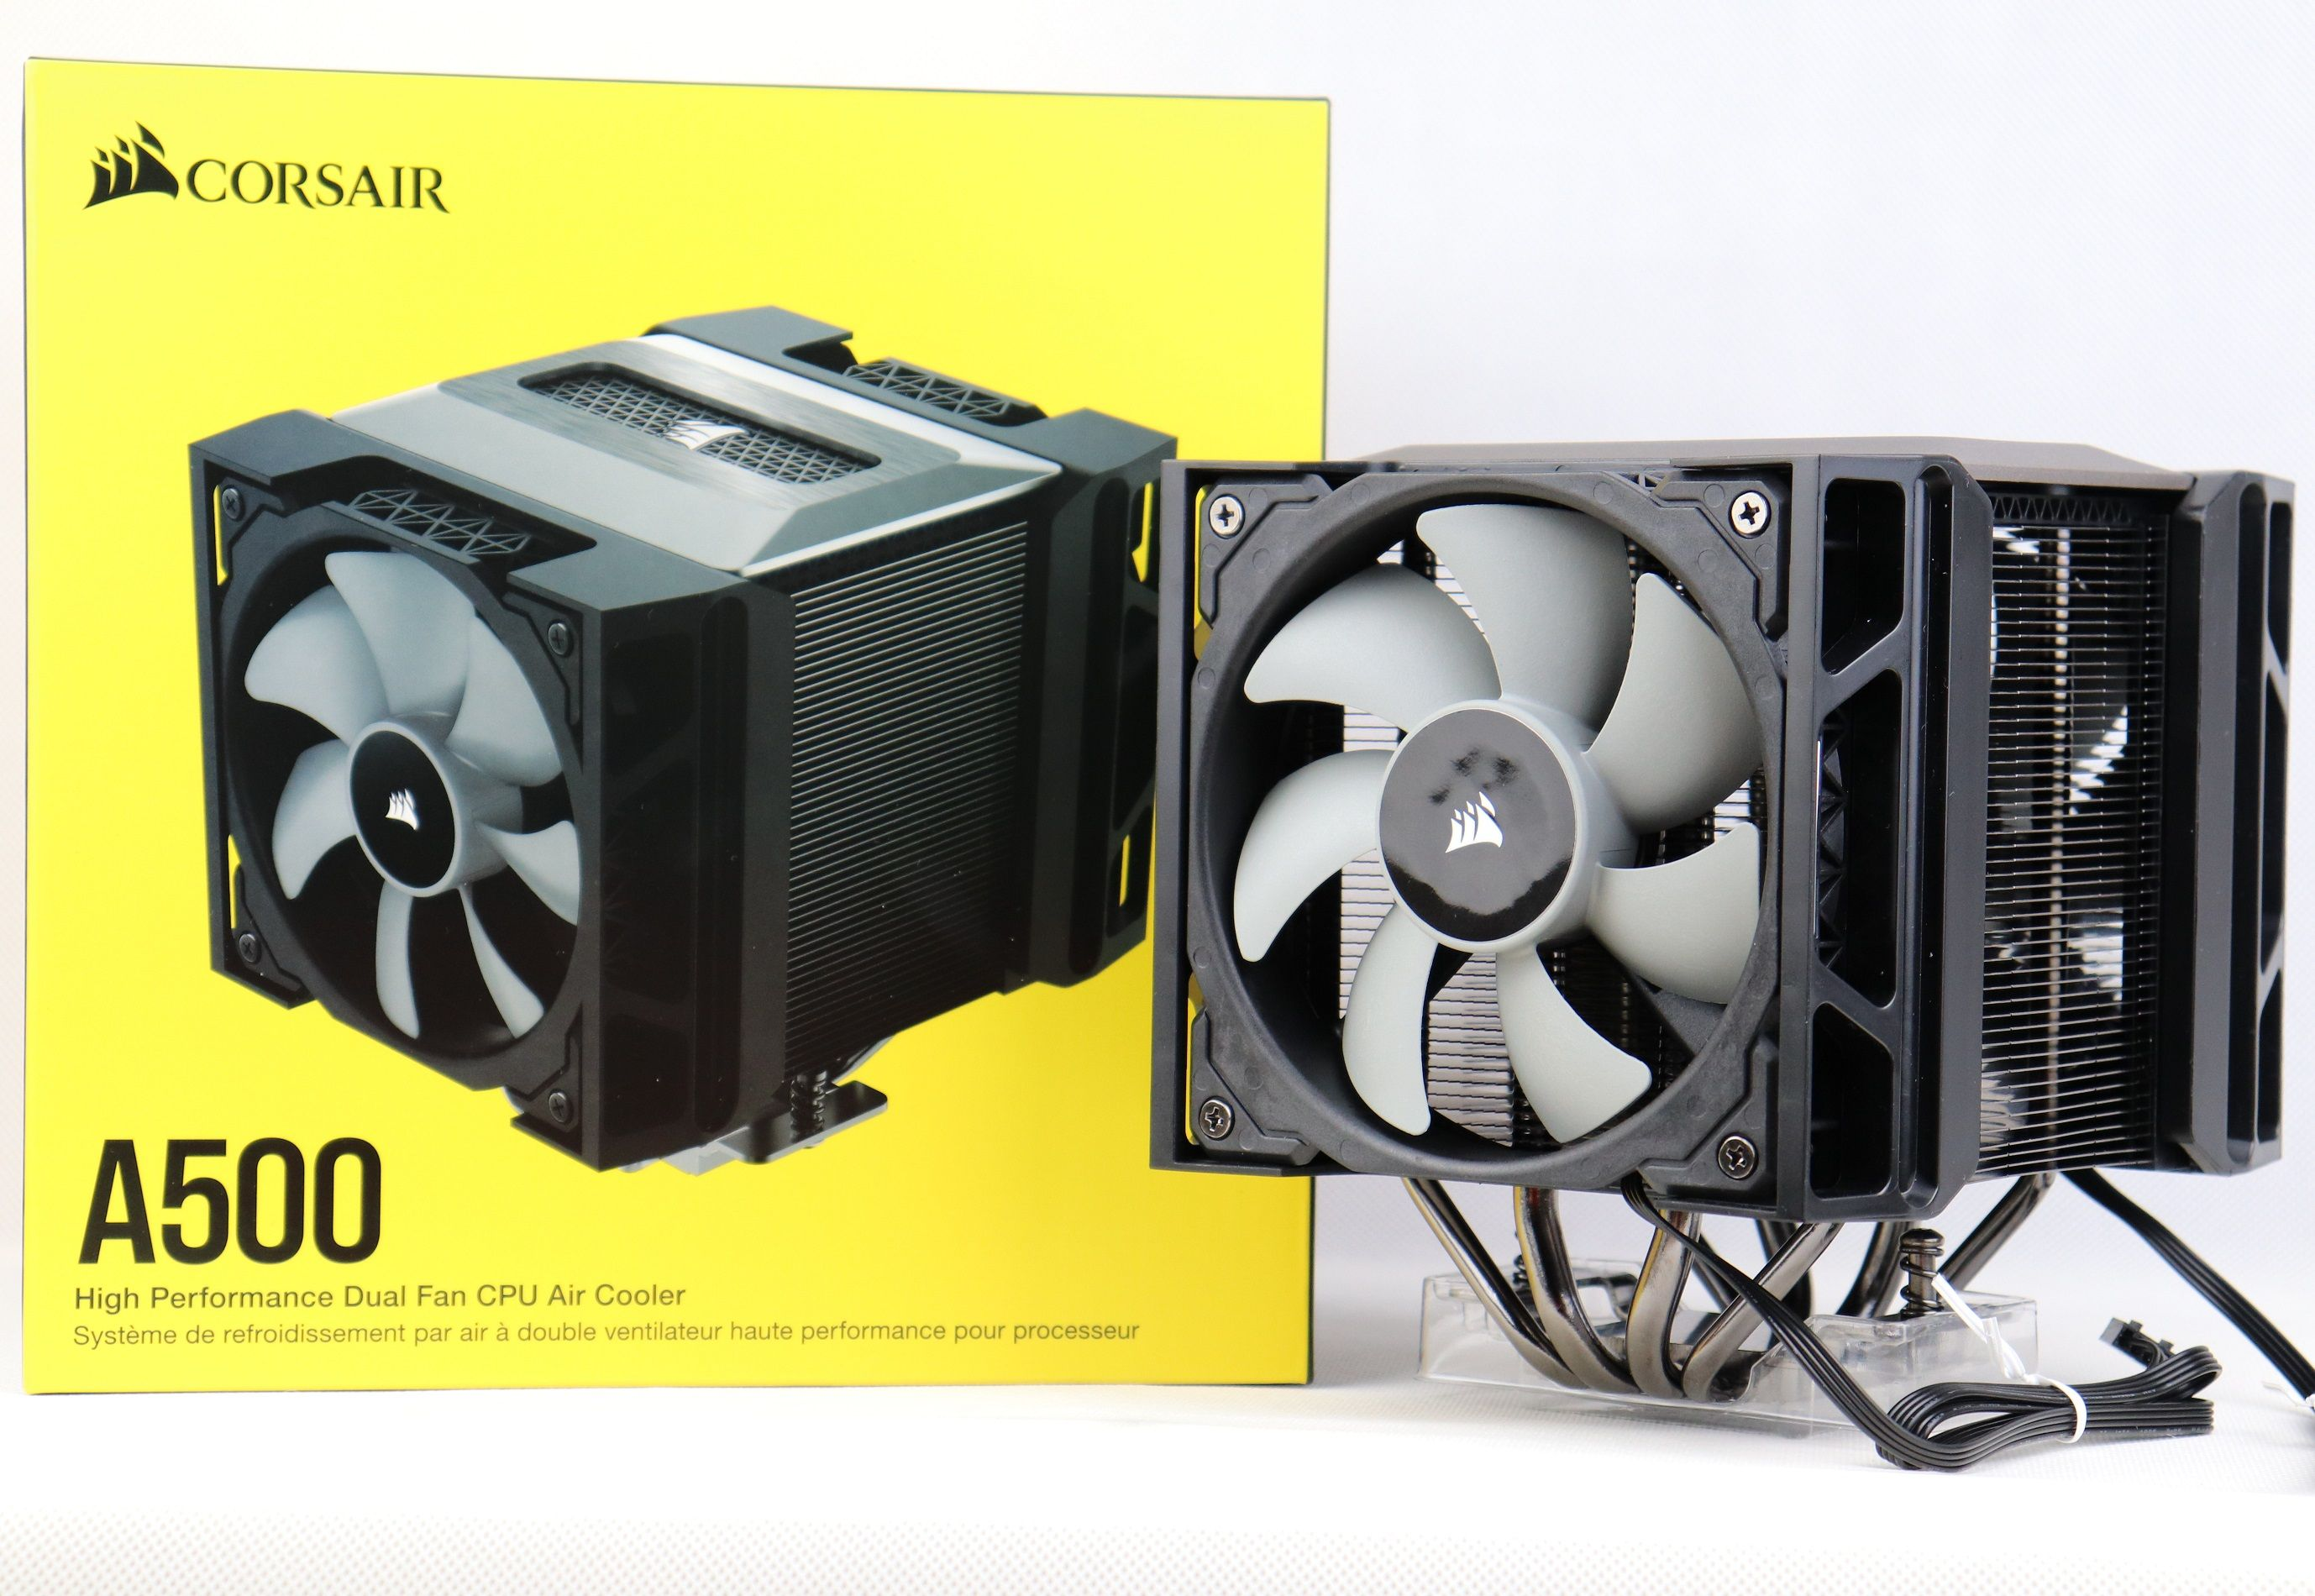 Corsair A500 Cpu Cooler Unboxing And Review In 2020 Unboxing Cooler Air Cooler